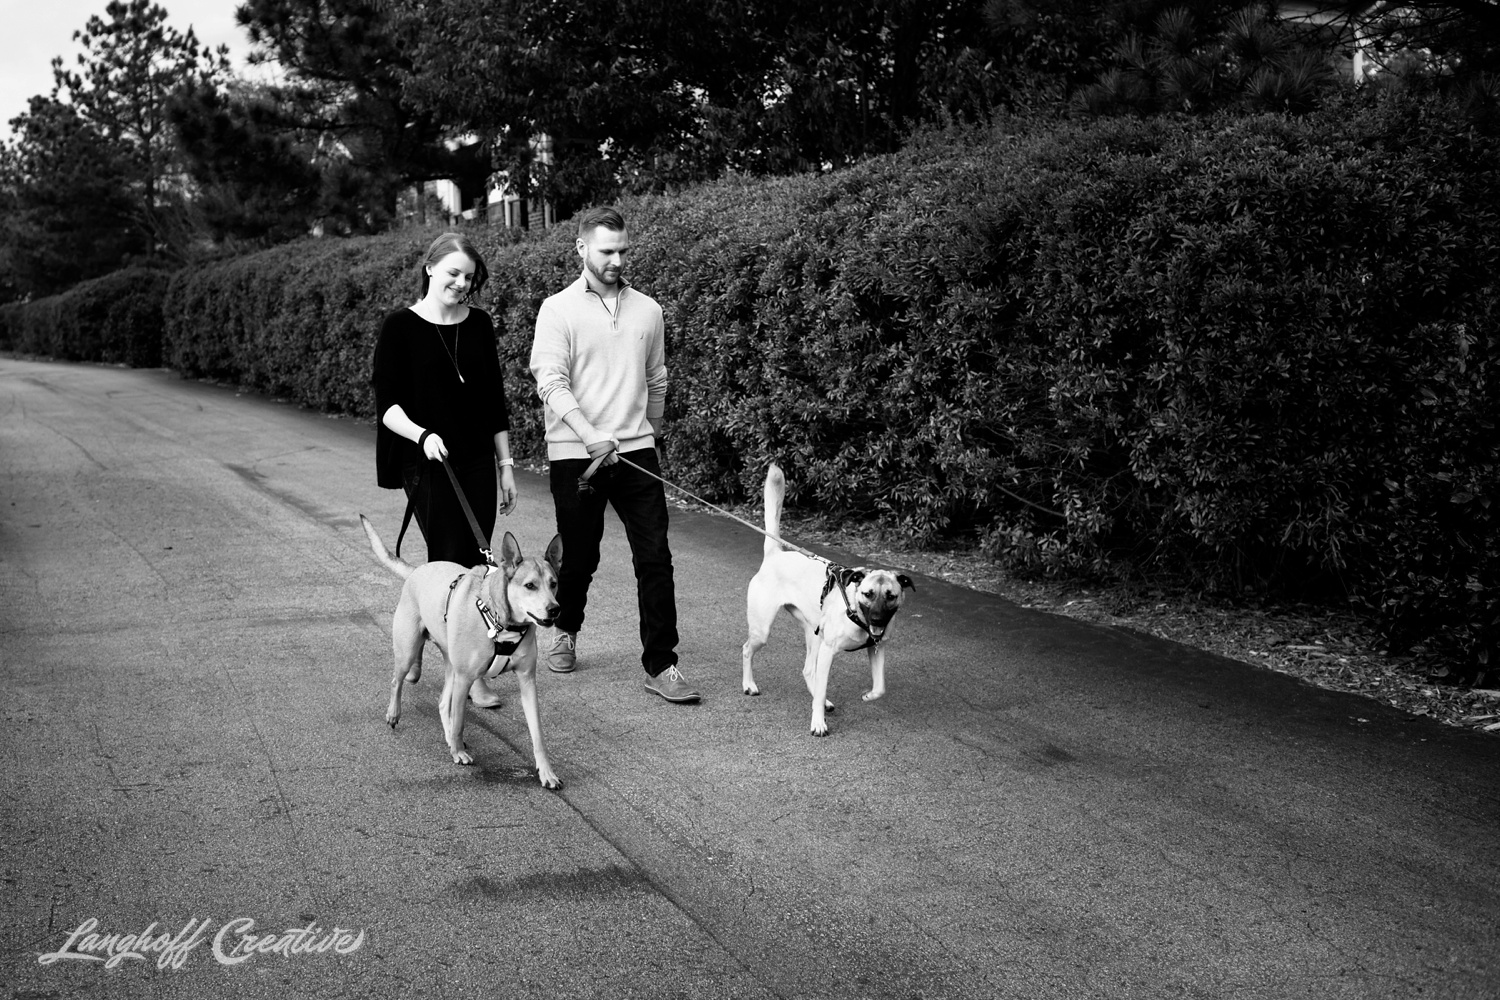 20171118-ByrdChristmas-Dogs-Holidays-LanghoffCreative-RealLifeSession-DocumentaryFamilyPhotography-RDUphotographer-8-photo.jpg